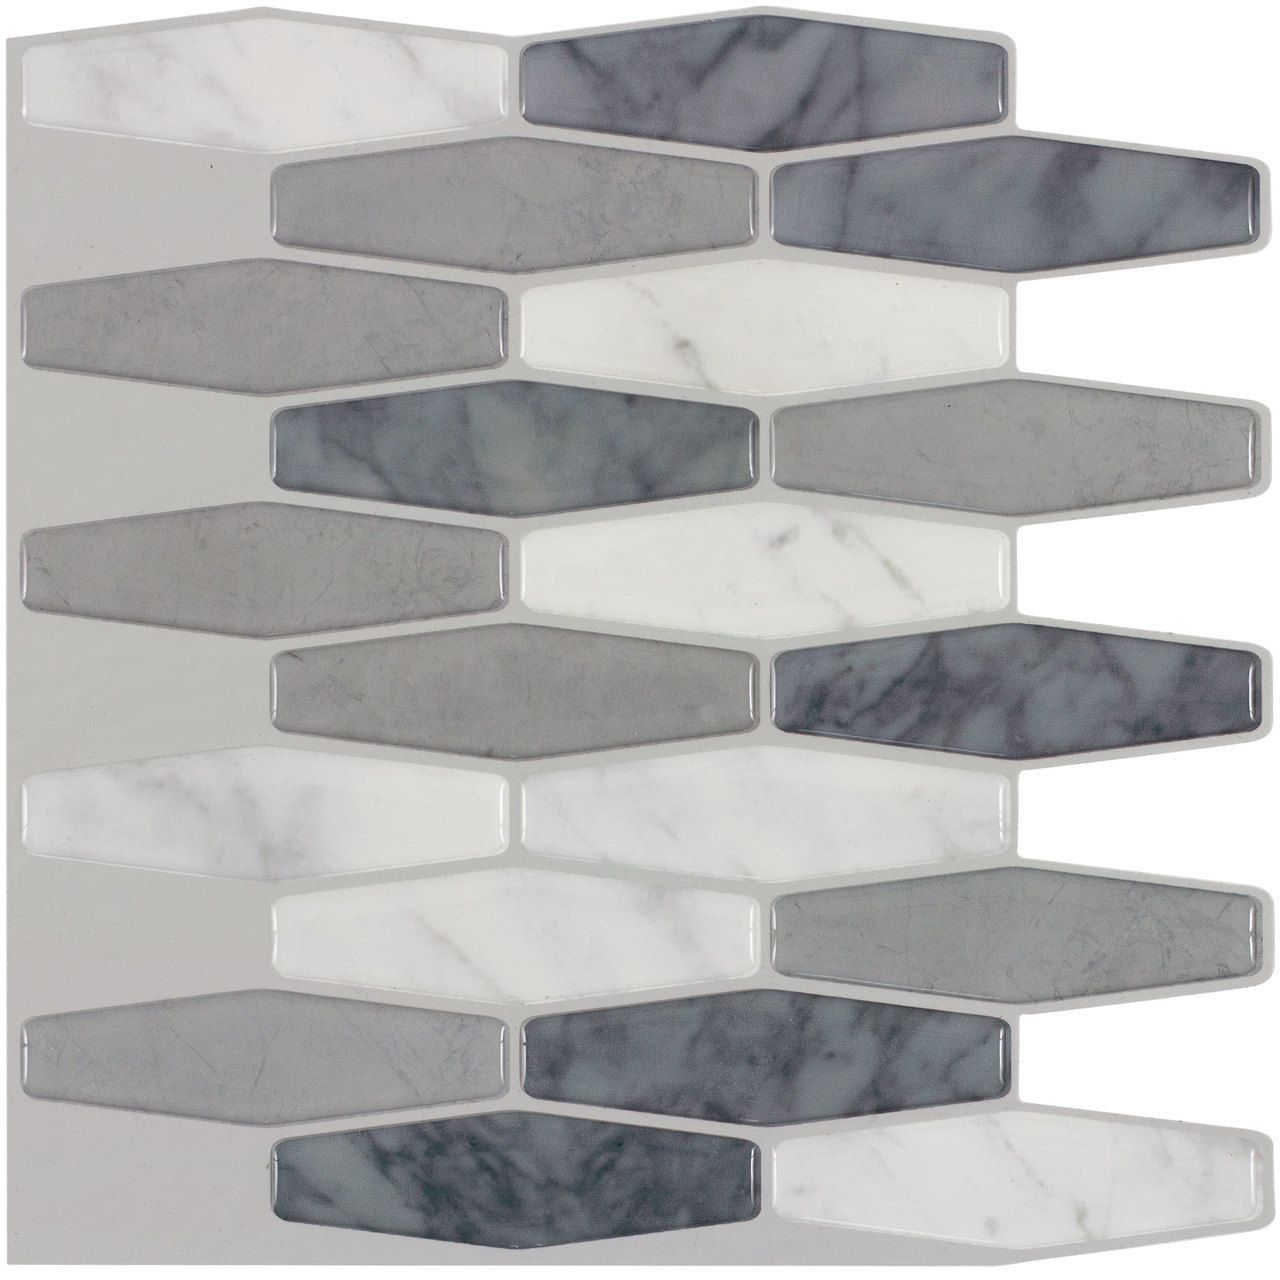 White Marble Peel Stick Wall Tile Is A Diy 3d Self Adhesive That